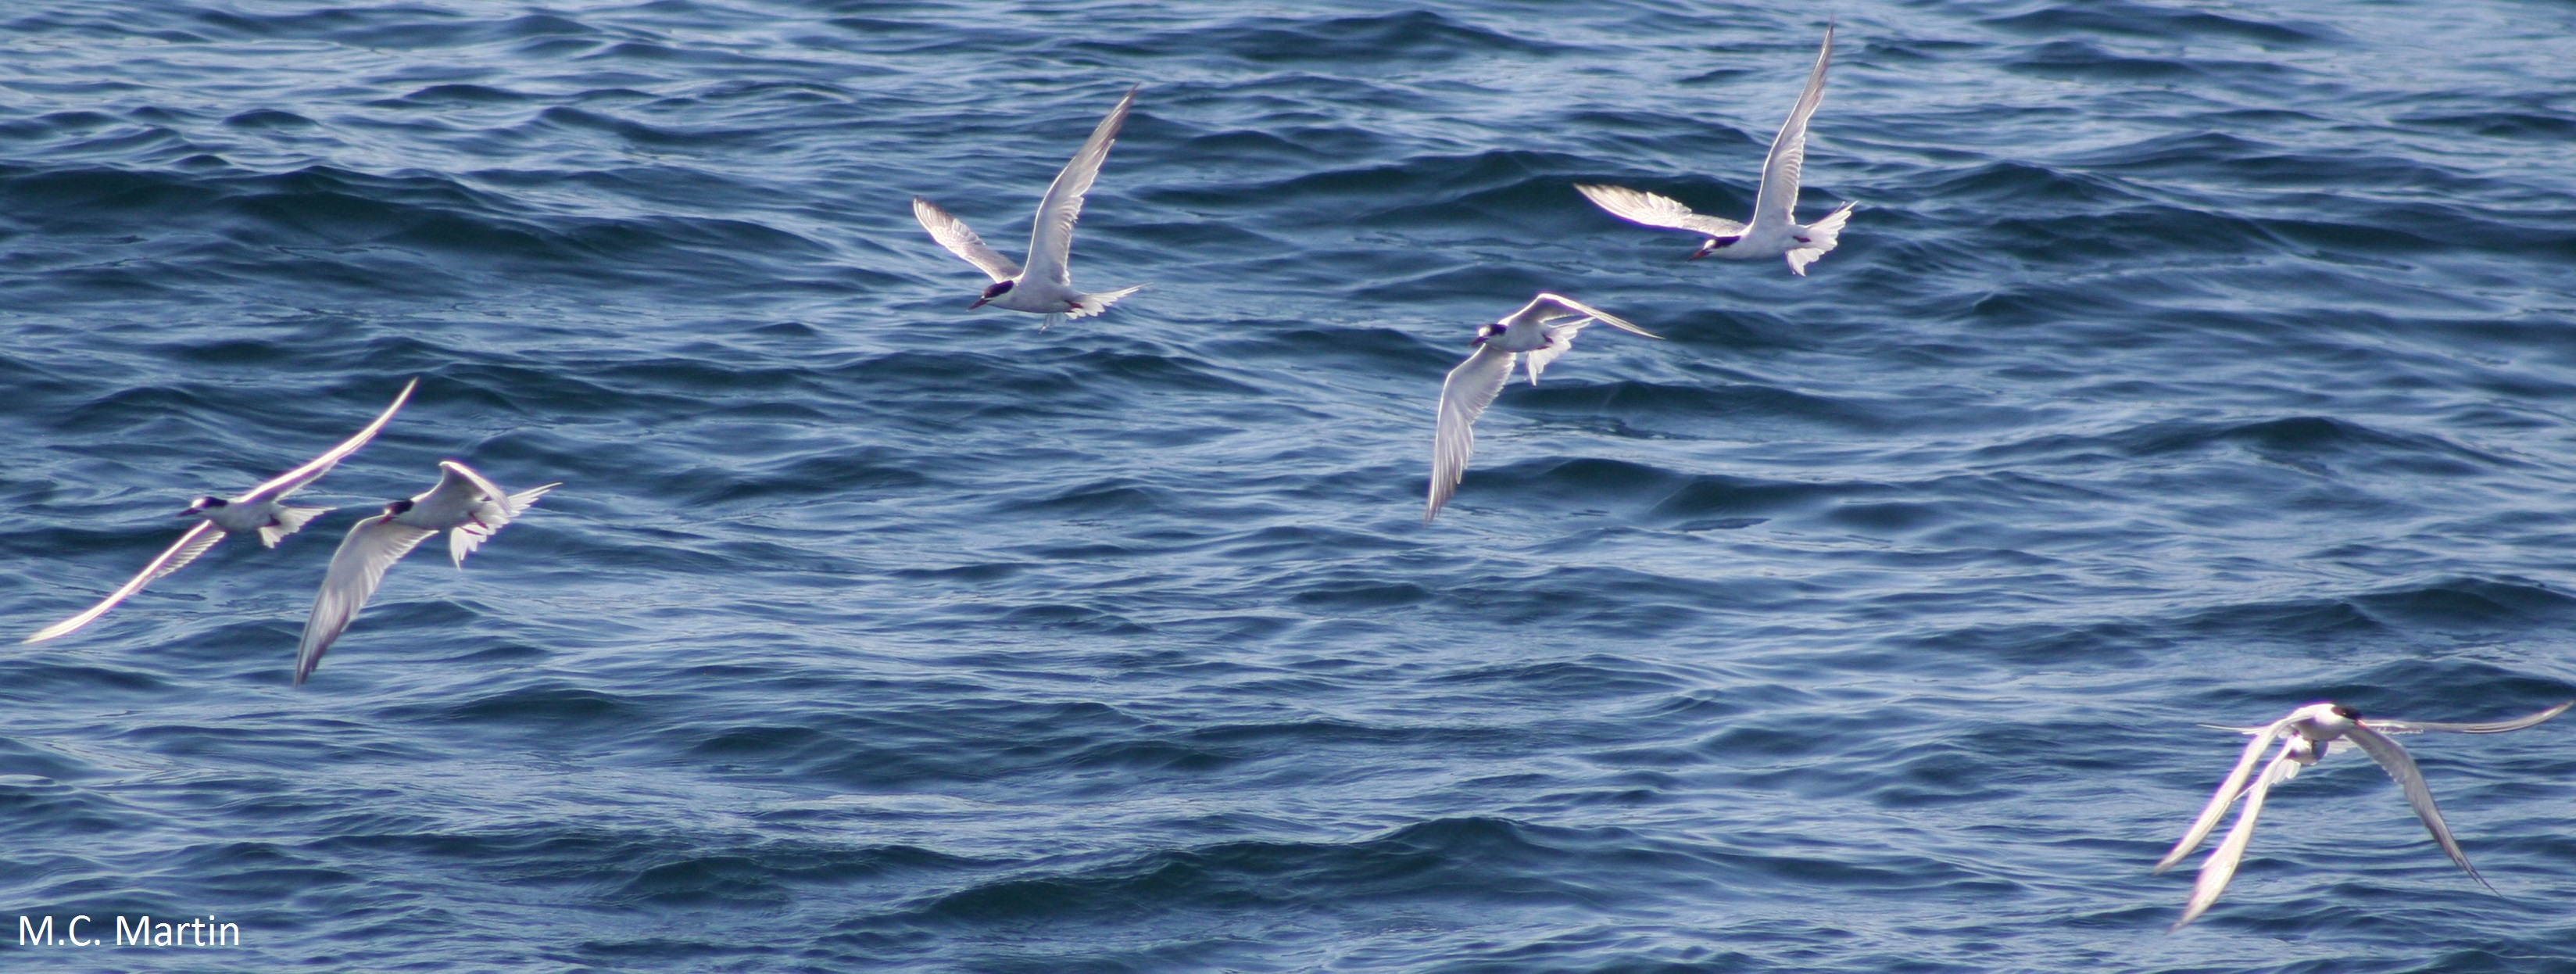 Tuna tern facilitation oikos blog for Does tuna fish have scales